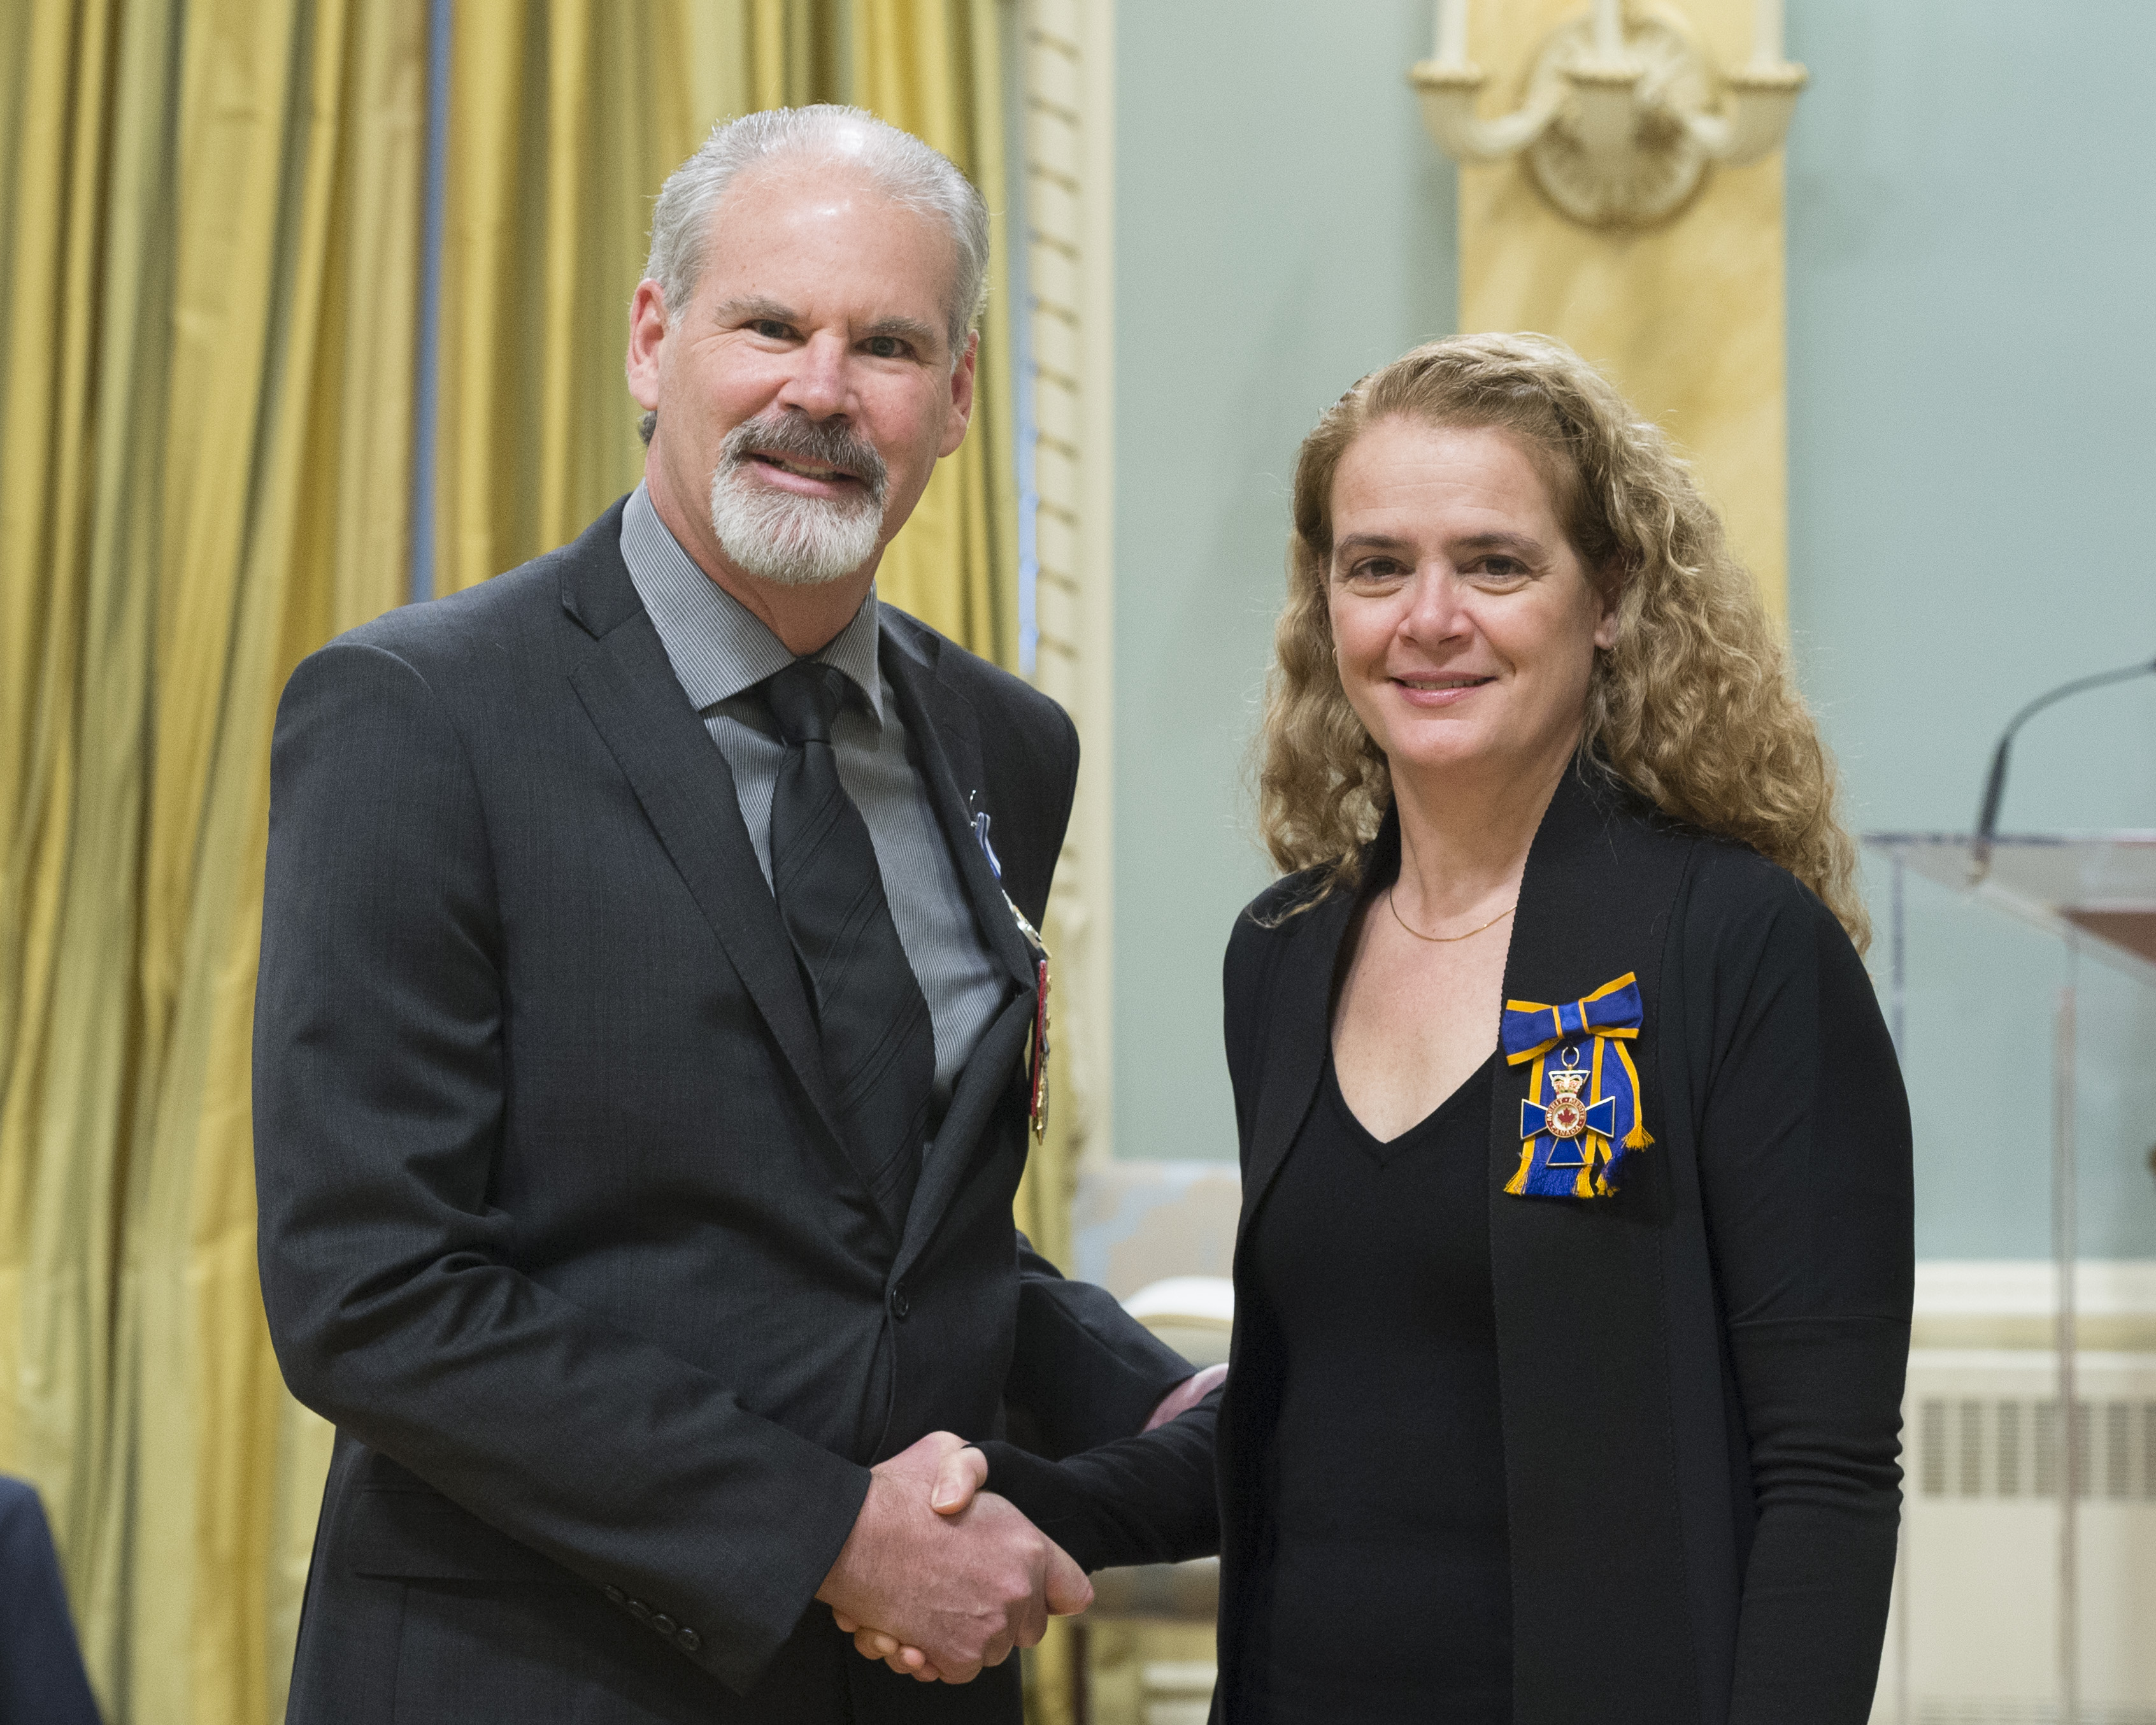 Colonel Joseph Robert François Malo receives the Meritorious Service Medal (Military Division) from Governor General and Commander-in-Chief of Canada Julie Payette on February 28, 2018. PHOTO: Sergeant Johanie Maheu, OSGG, GG05-2018-0066-039